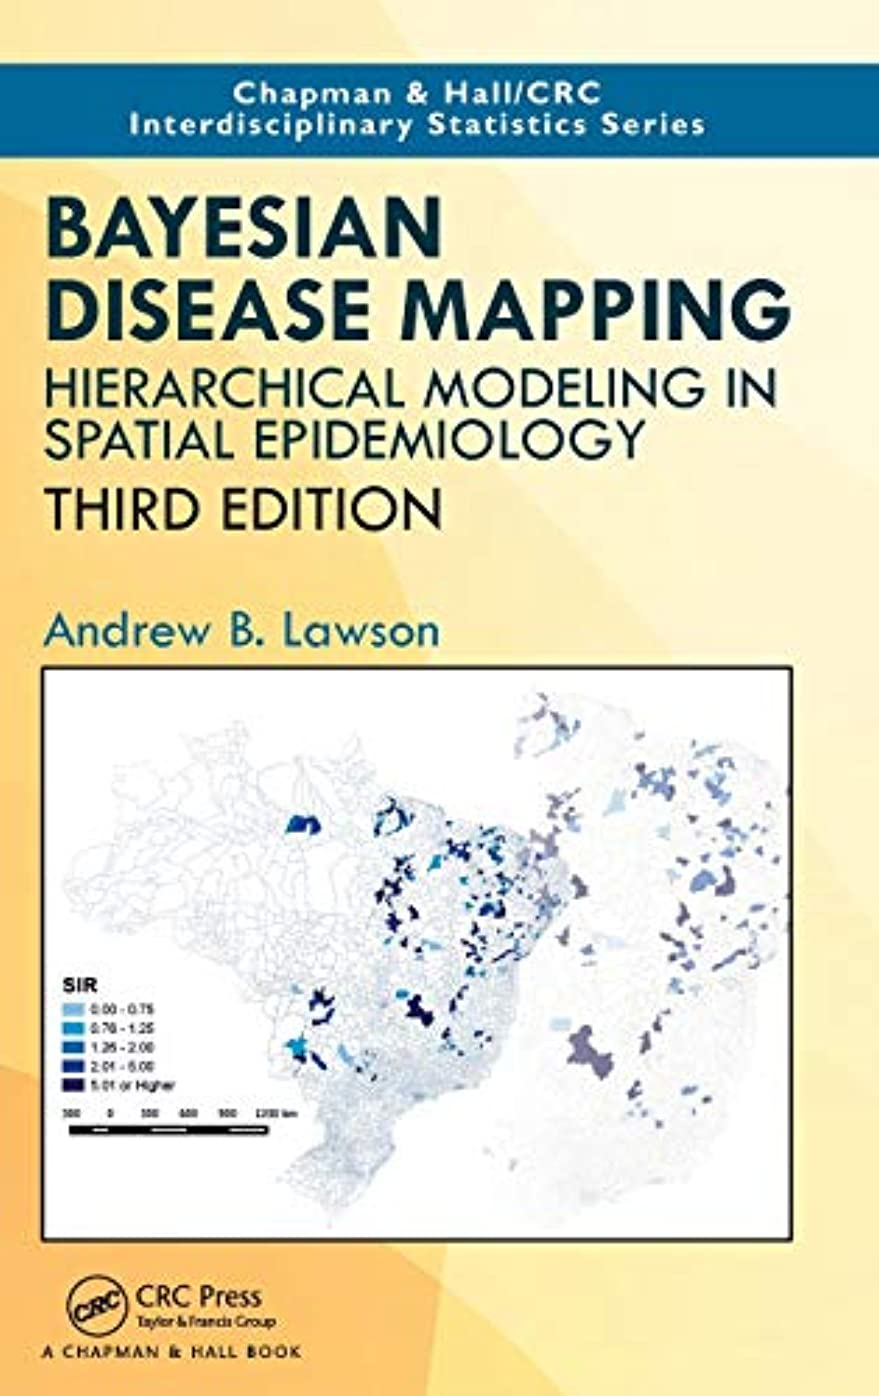 見せます影響若さBayesian Disease Mapping: Hierarchical Modeling in Spatial Epidemiology, Third Edition (Chapman & Hall/CRC Interdisciplinary Statistics)